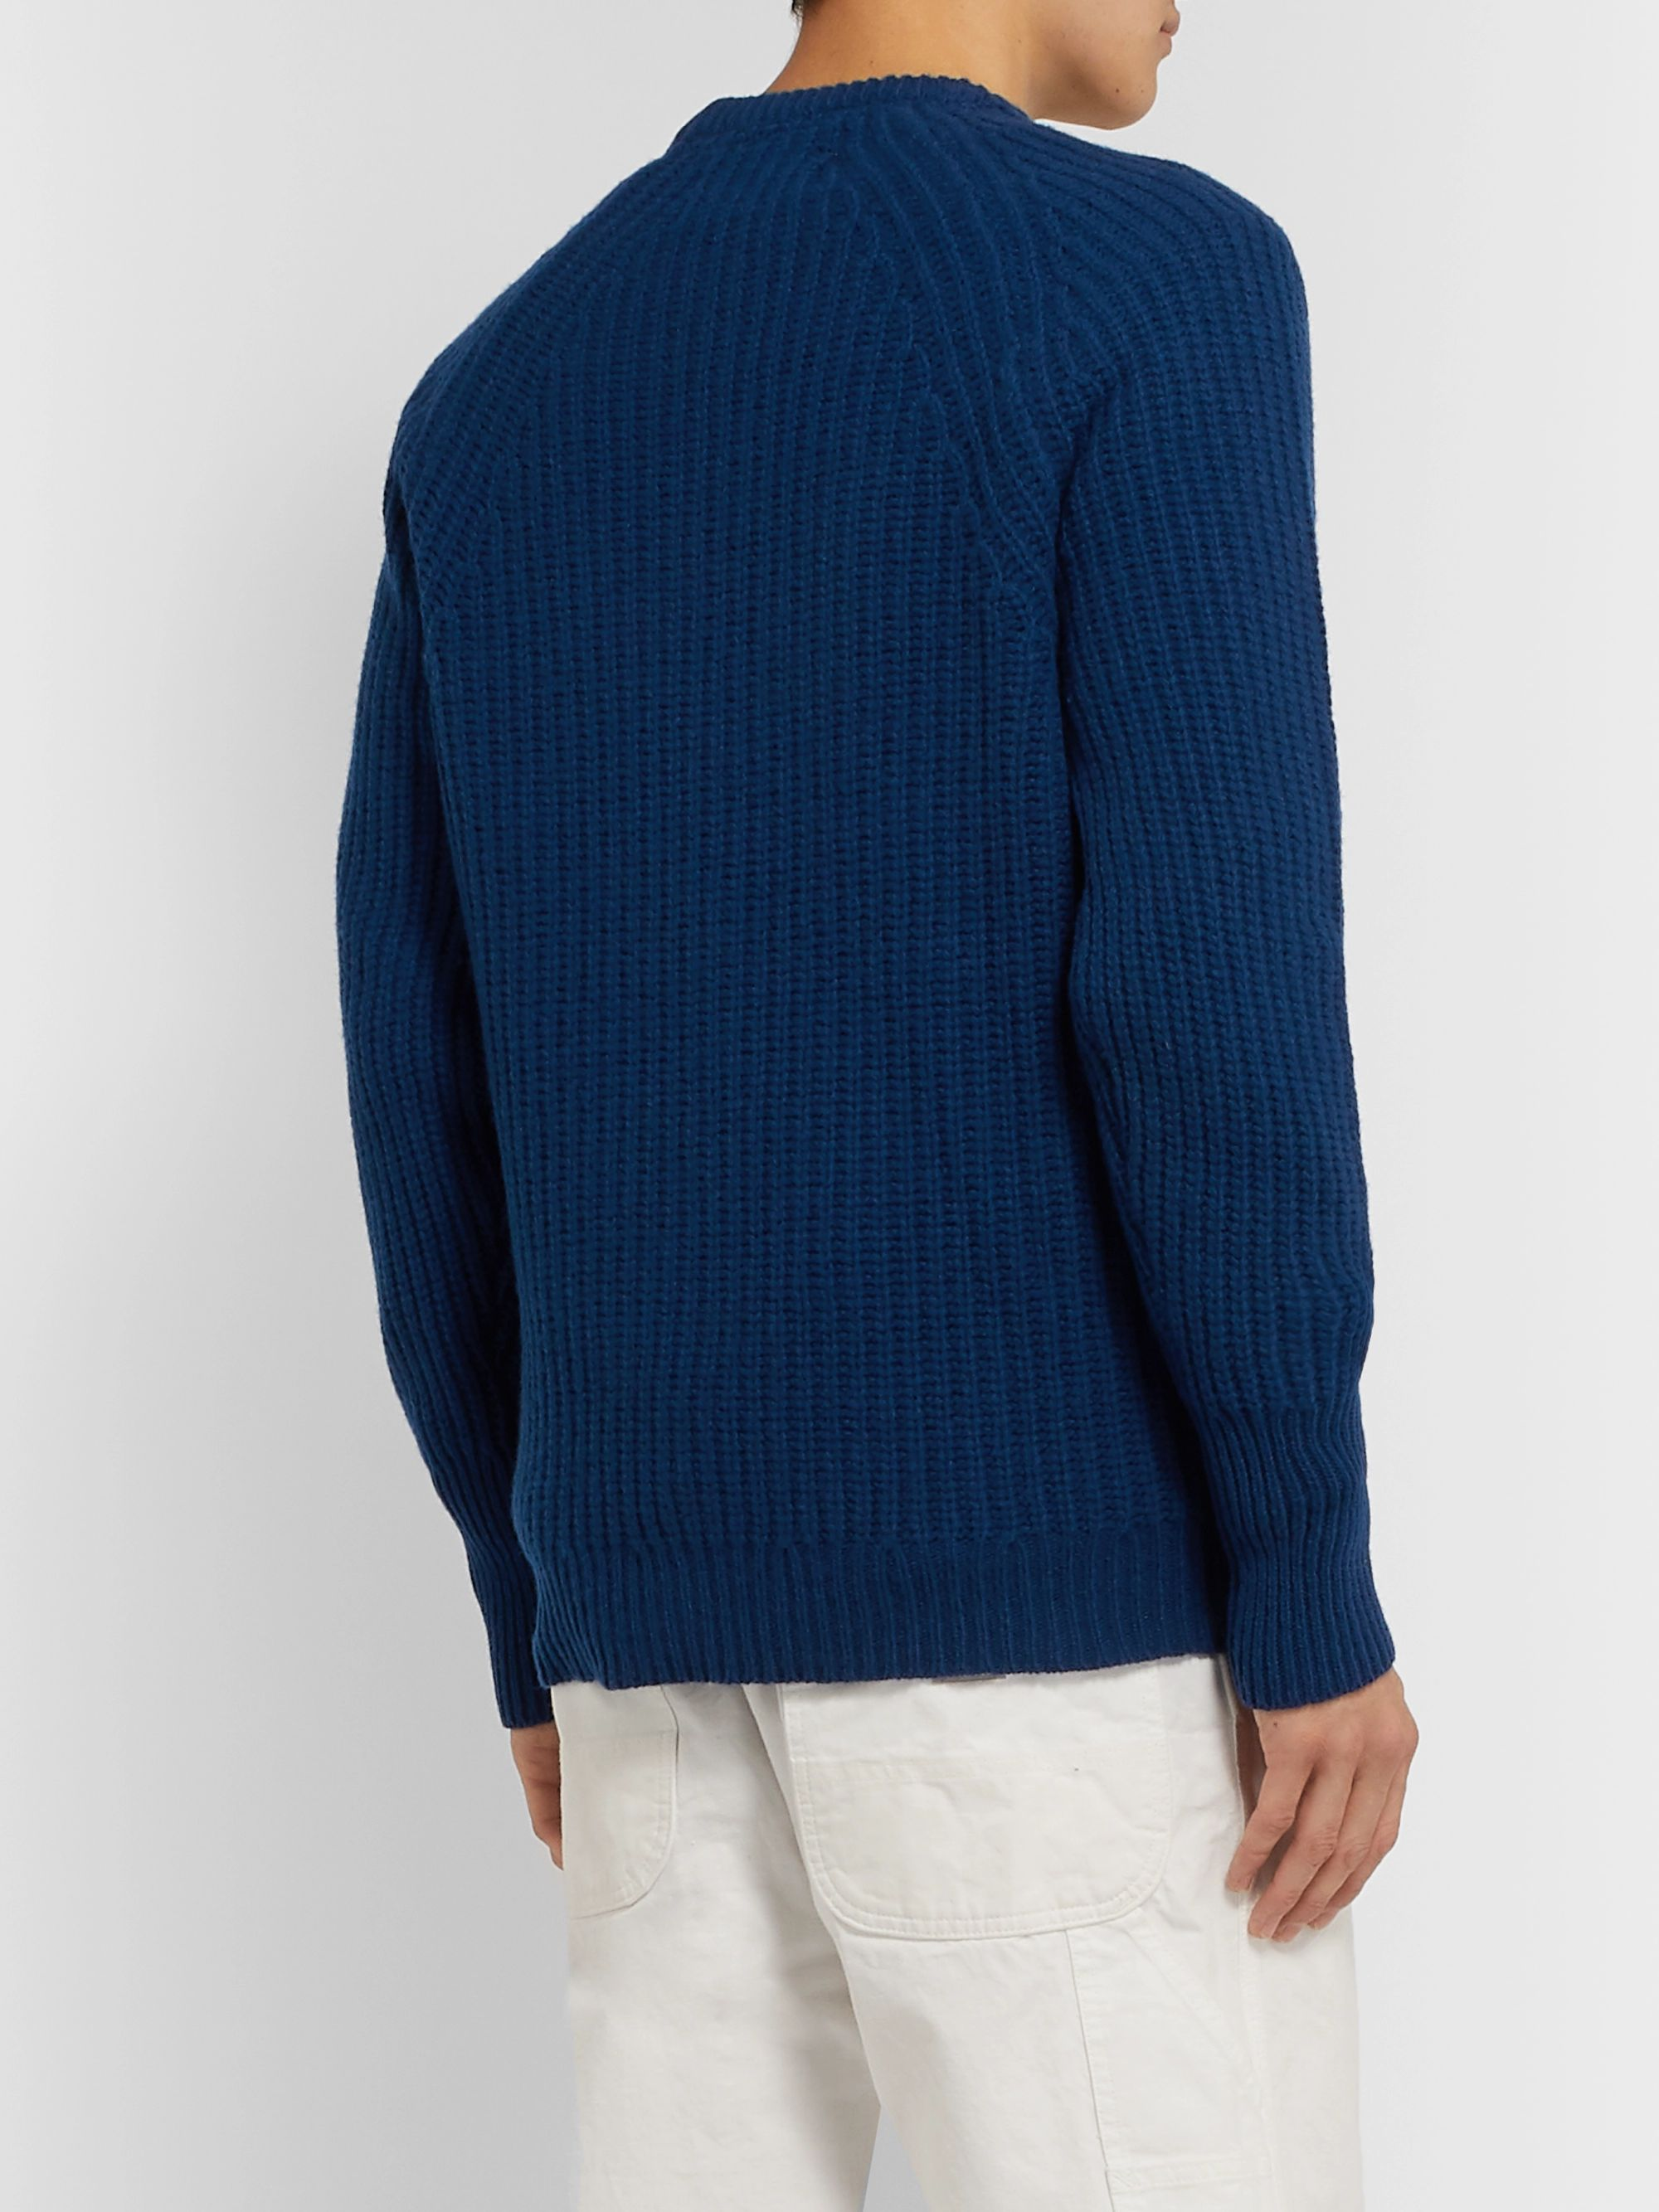 Barbour White Label White Label Tynedale Ribbed Wool Sweater